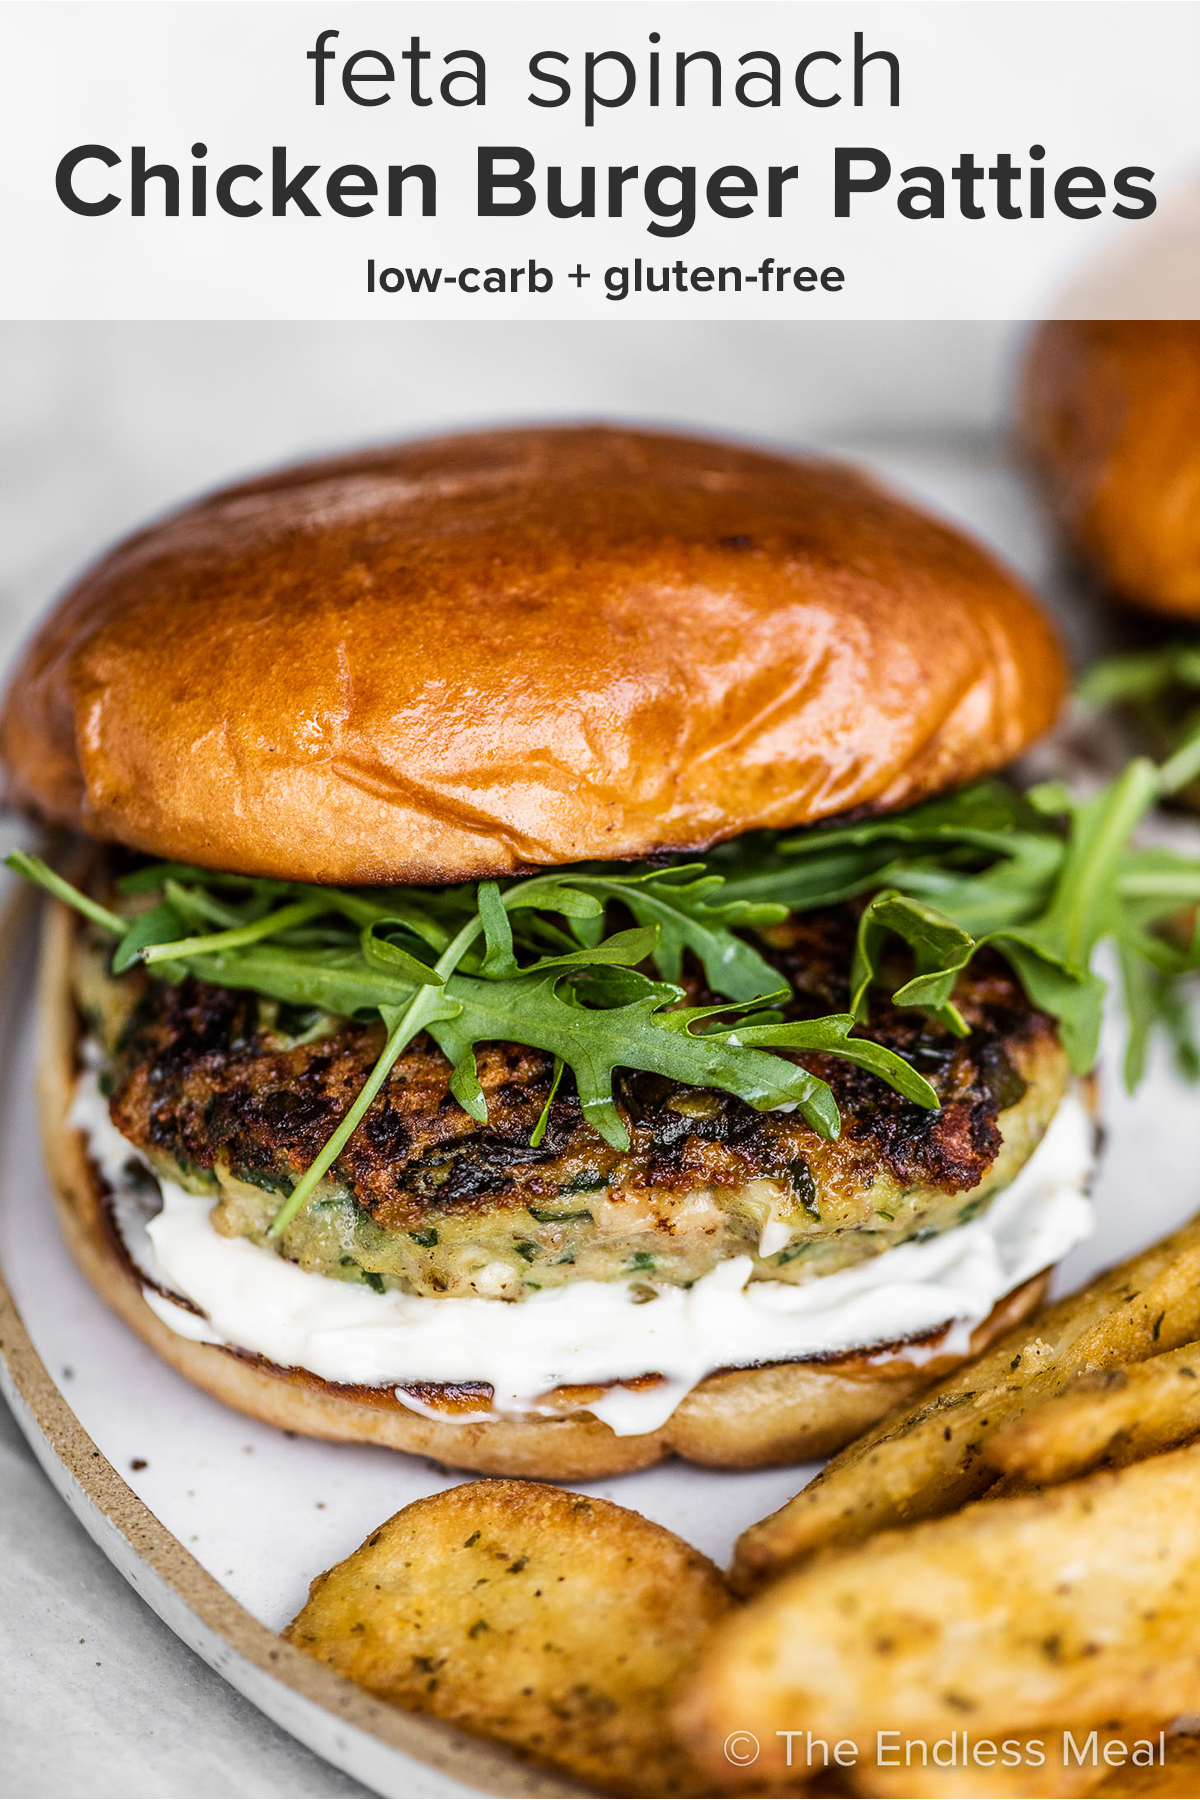 A chicken feta spinach burger on a white plate with fries and the recipe title on top of the picture.